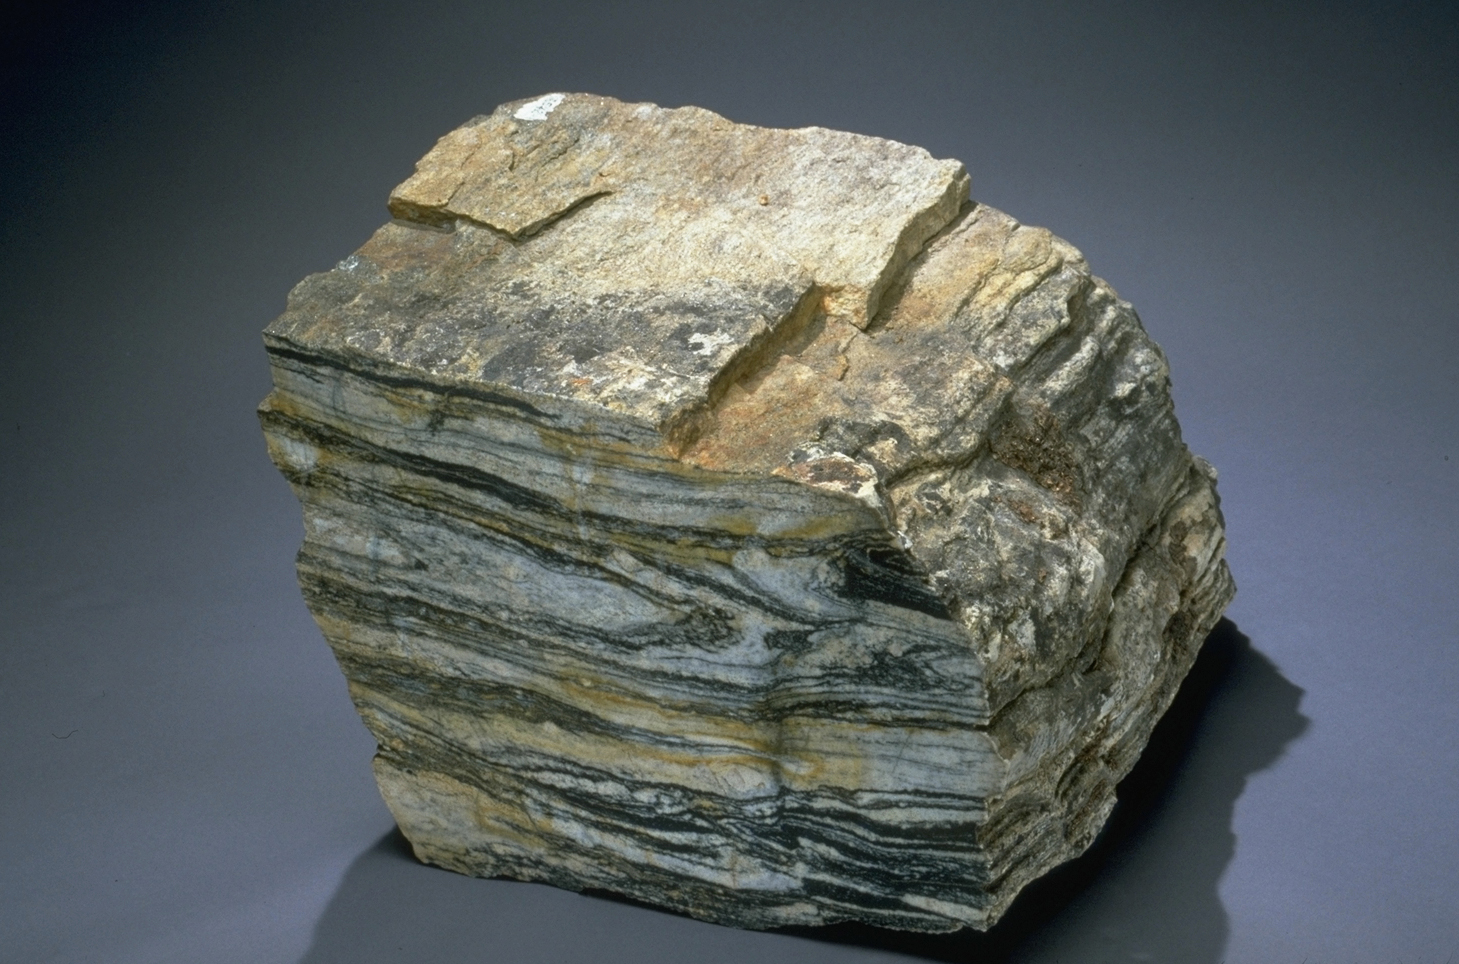 A banded tonalitic gneiss